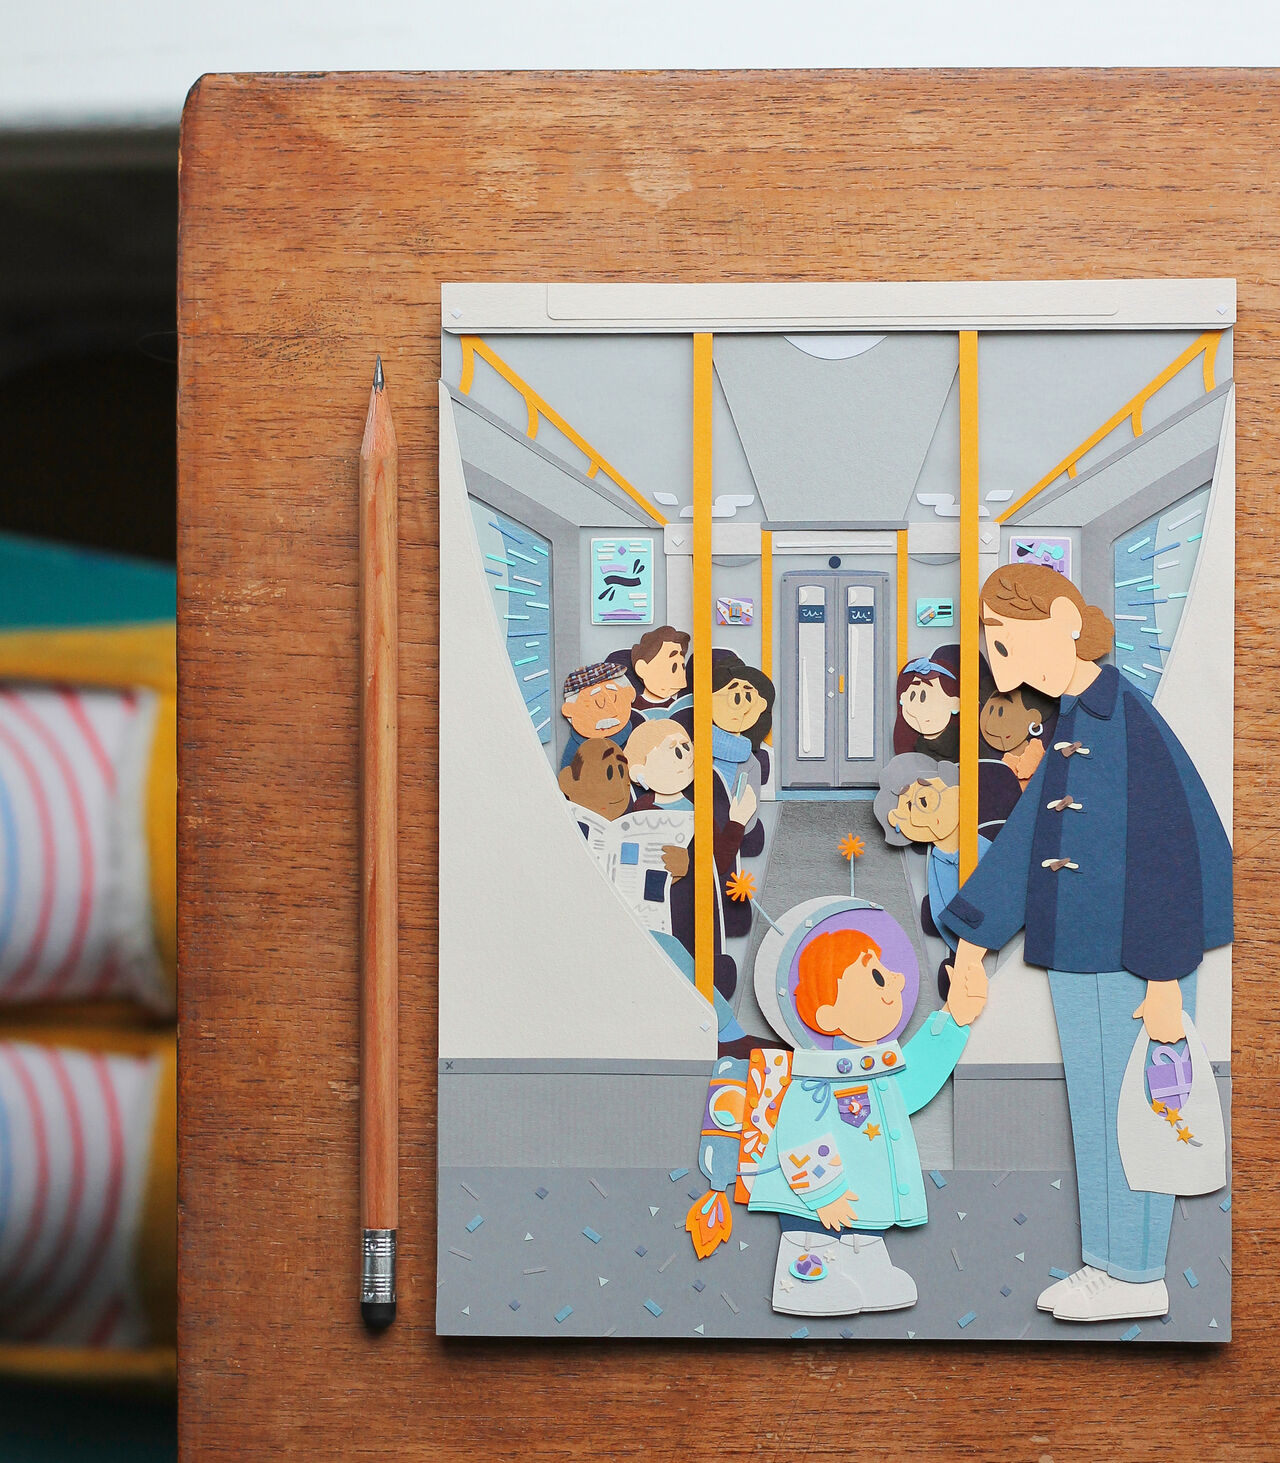 Top-down photo of an illustrated image of a child with their parent on the tube, entirely created out of cut out paper. A pencil lies next to it showing the intricate scale.